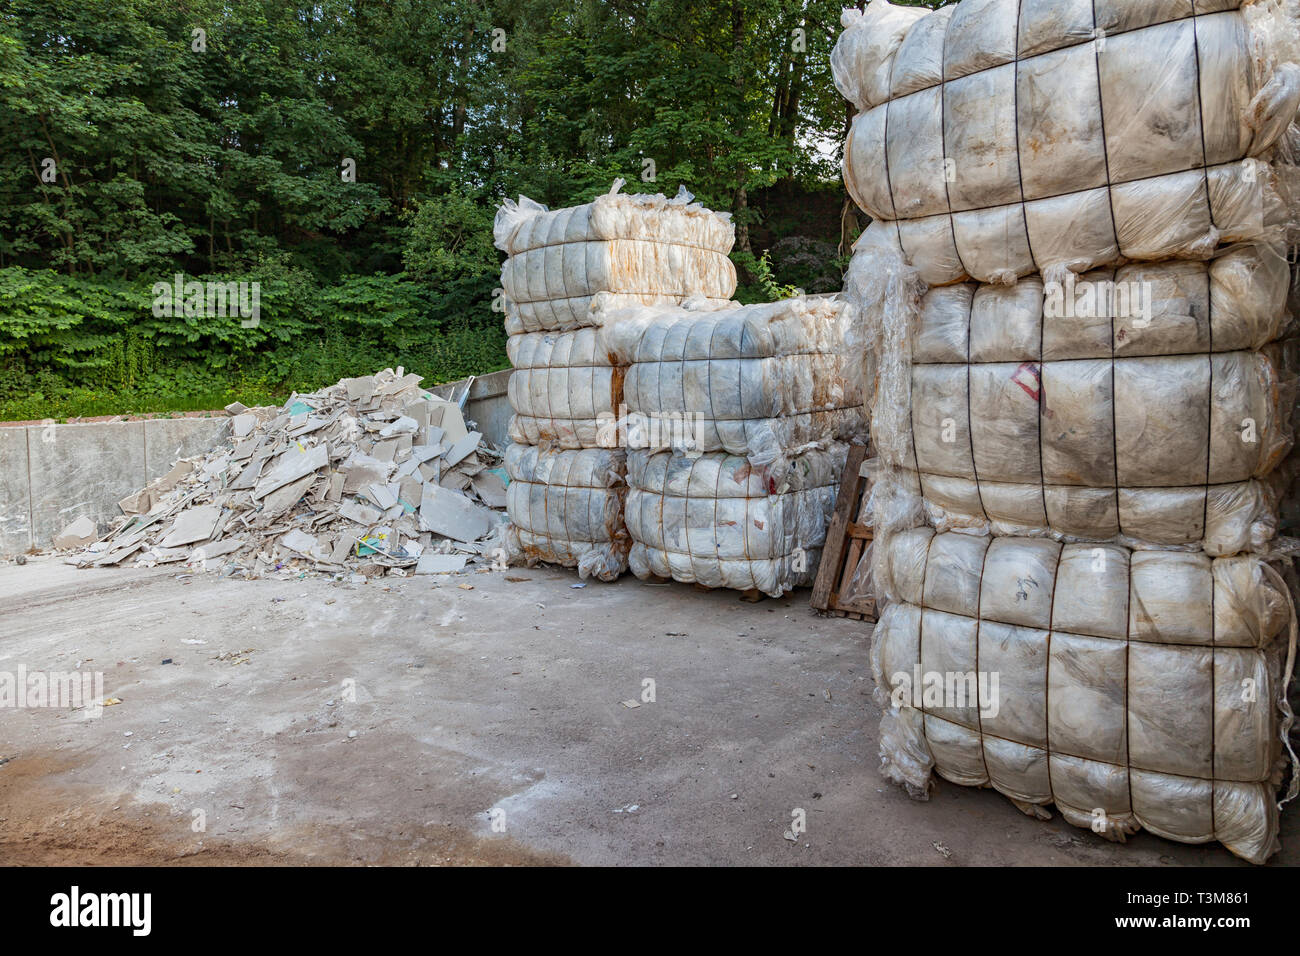 Bundle / cube with plastic garbage on a recycling yard - Stock Image